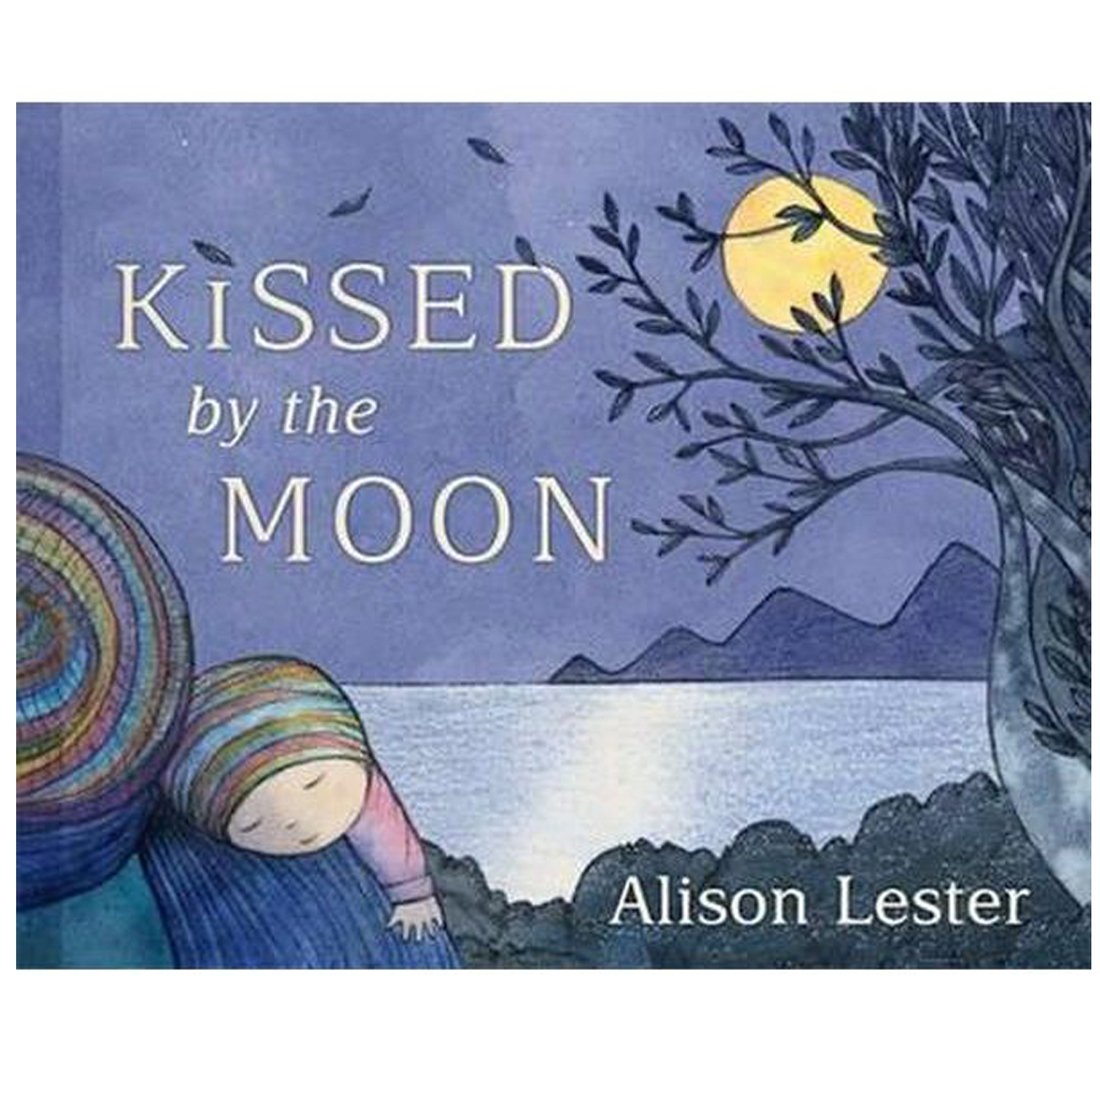 Books - Kissed by the Moon